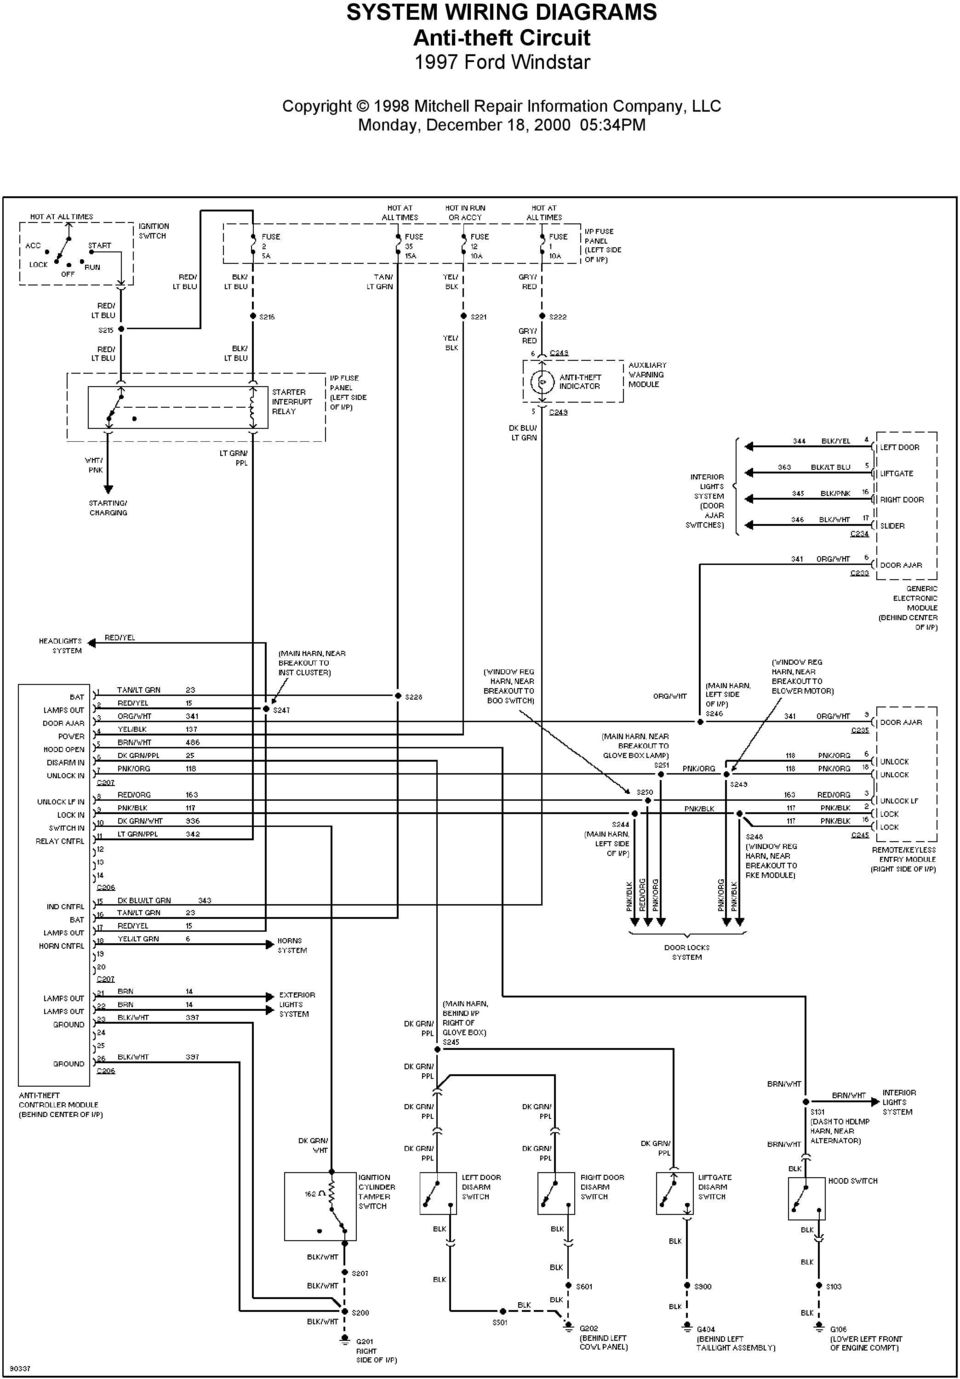 1995 e250 wire schematics